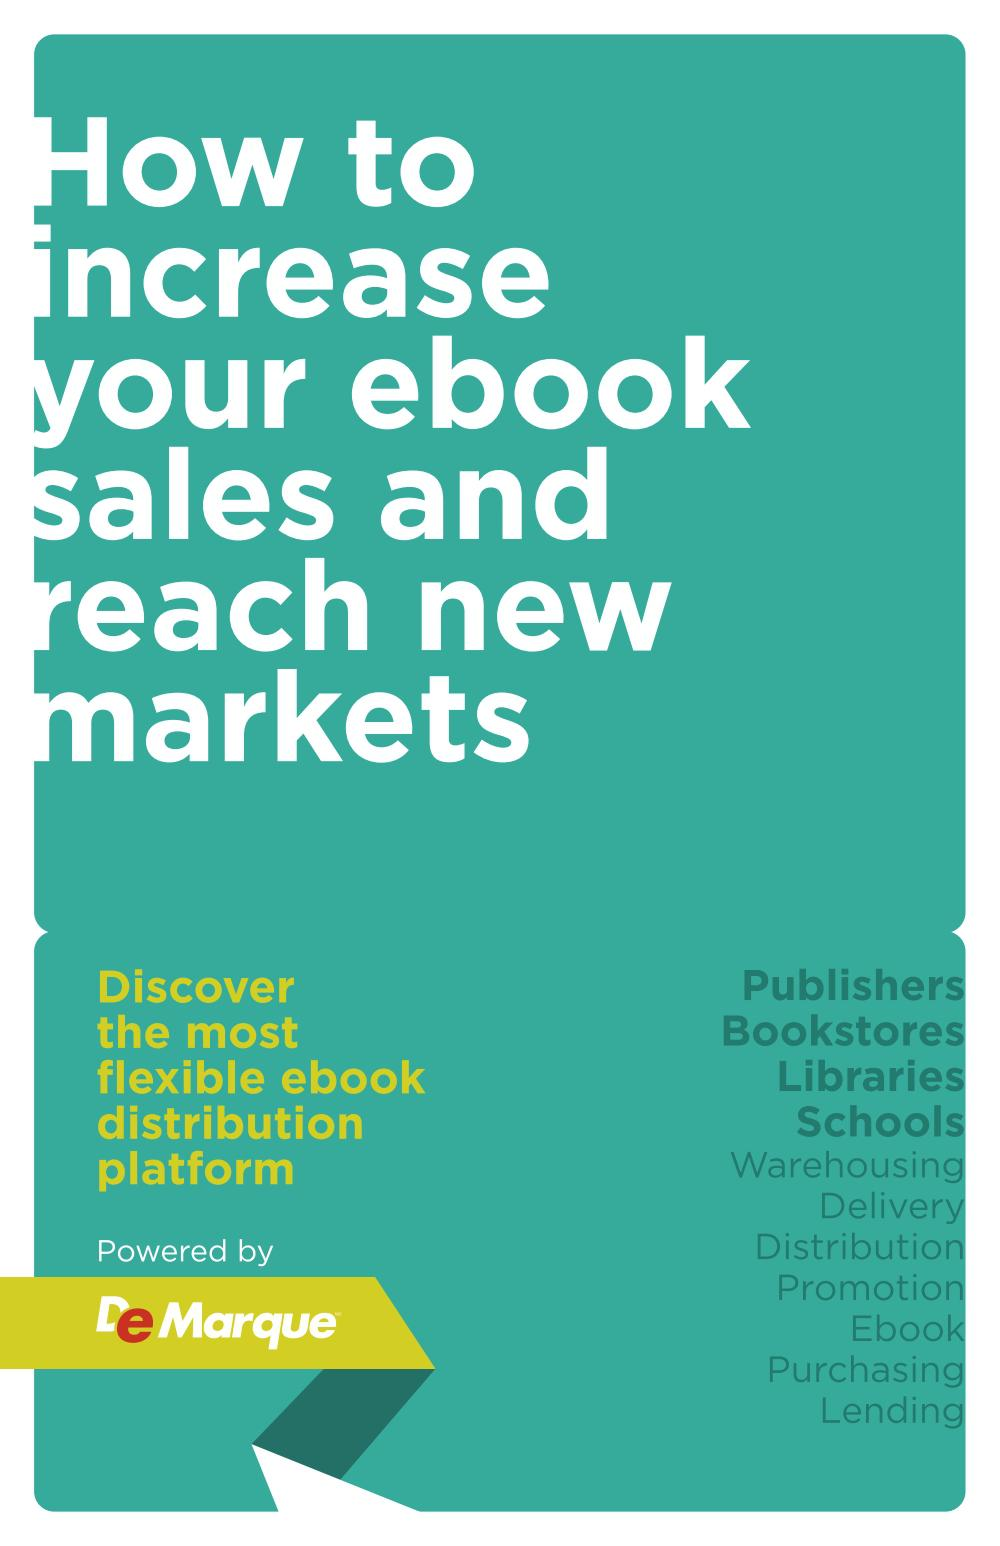 HOW TO INCREASE YOUR EBOOK SALES AND REACH NEW MARKETS